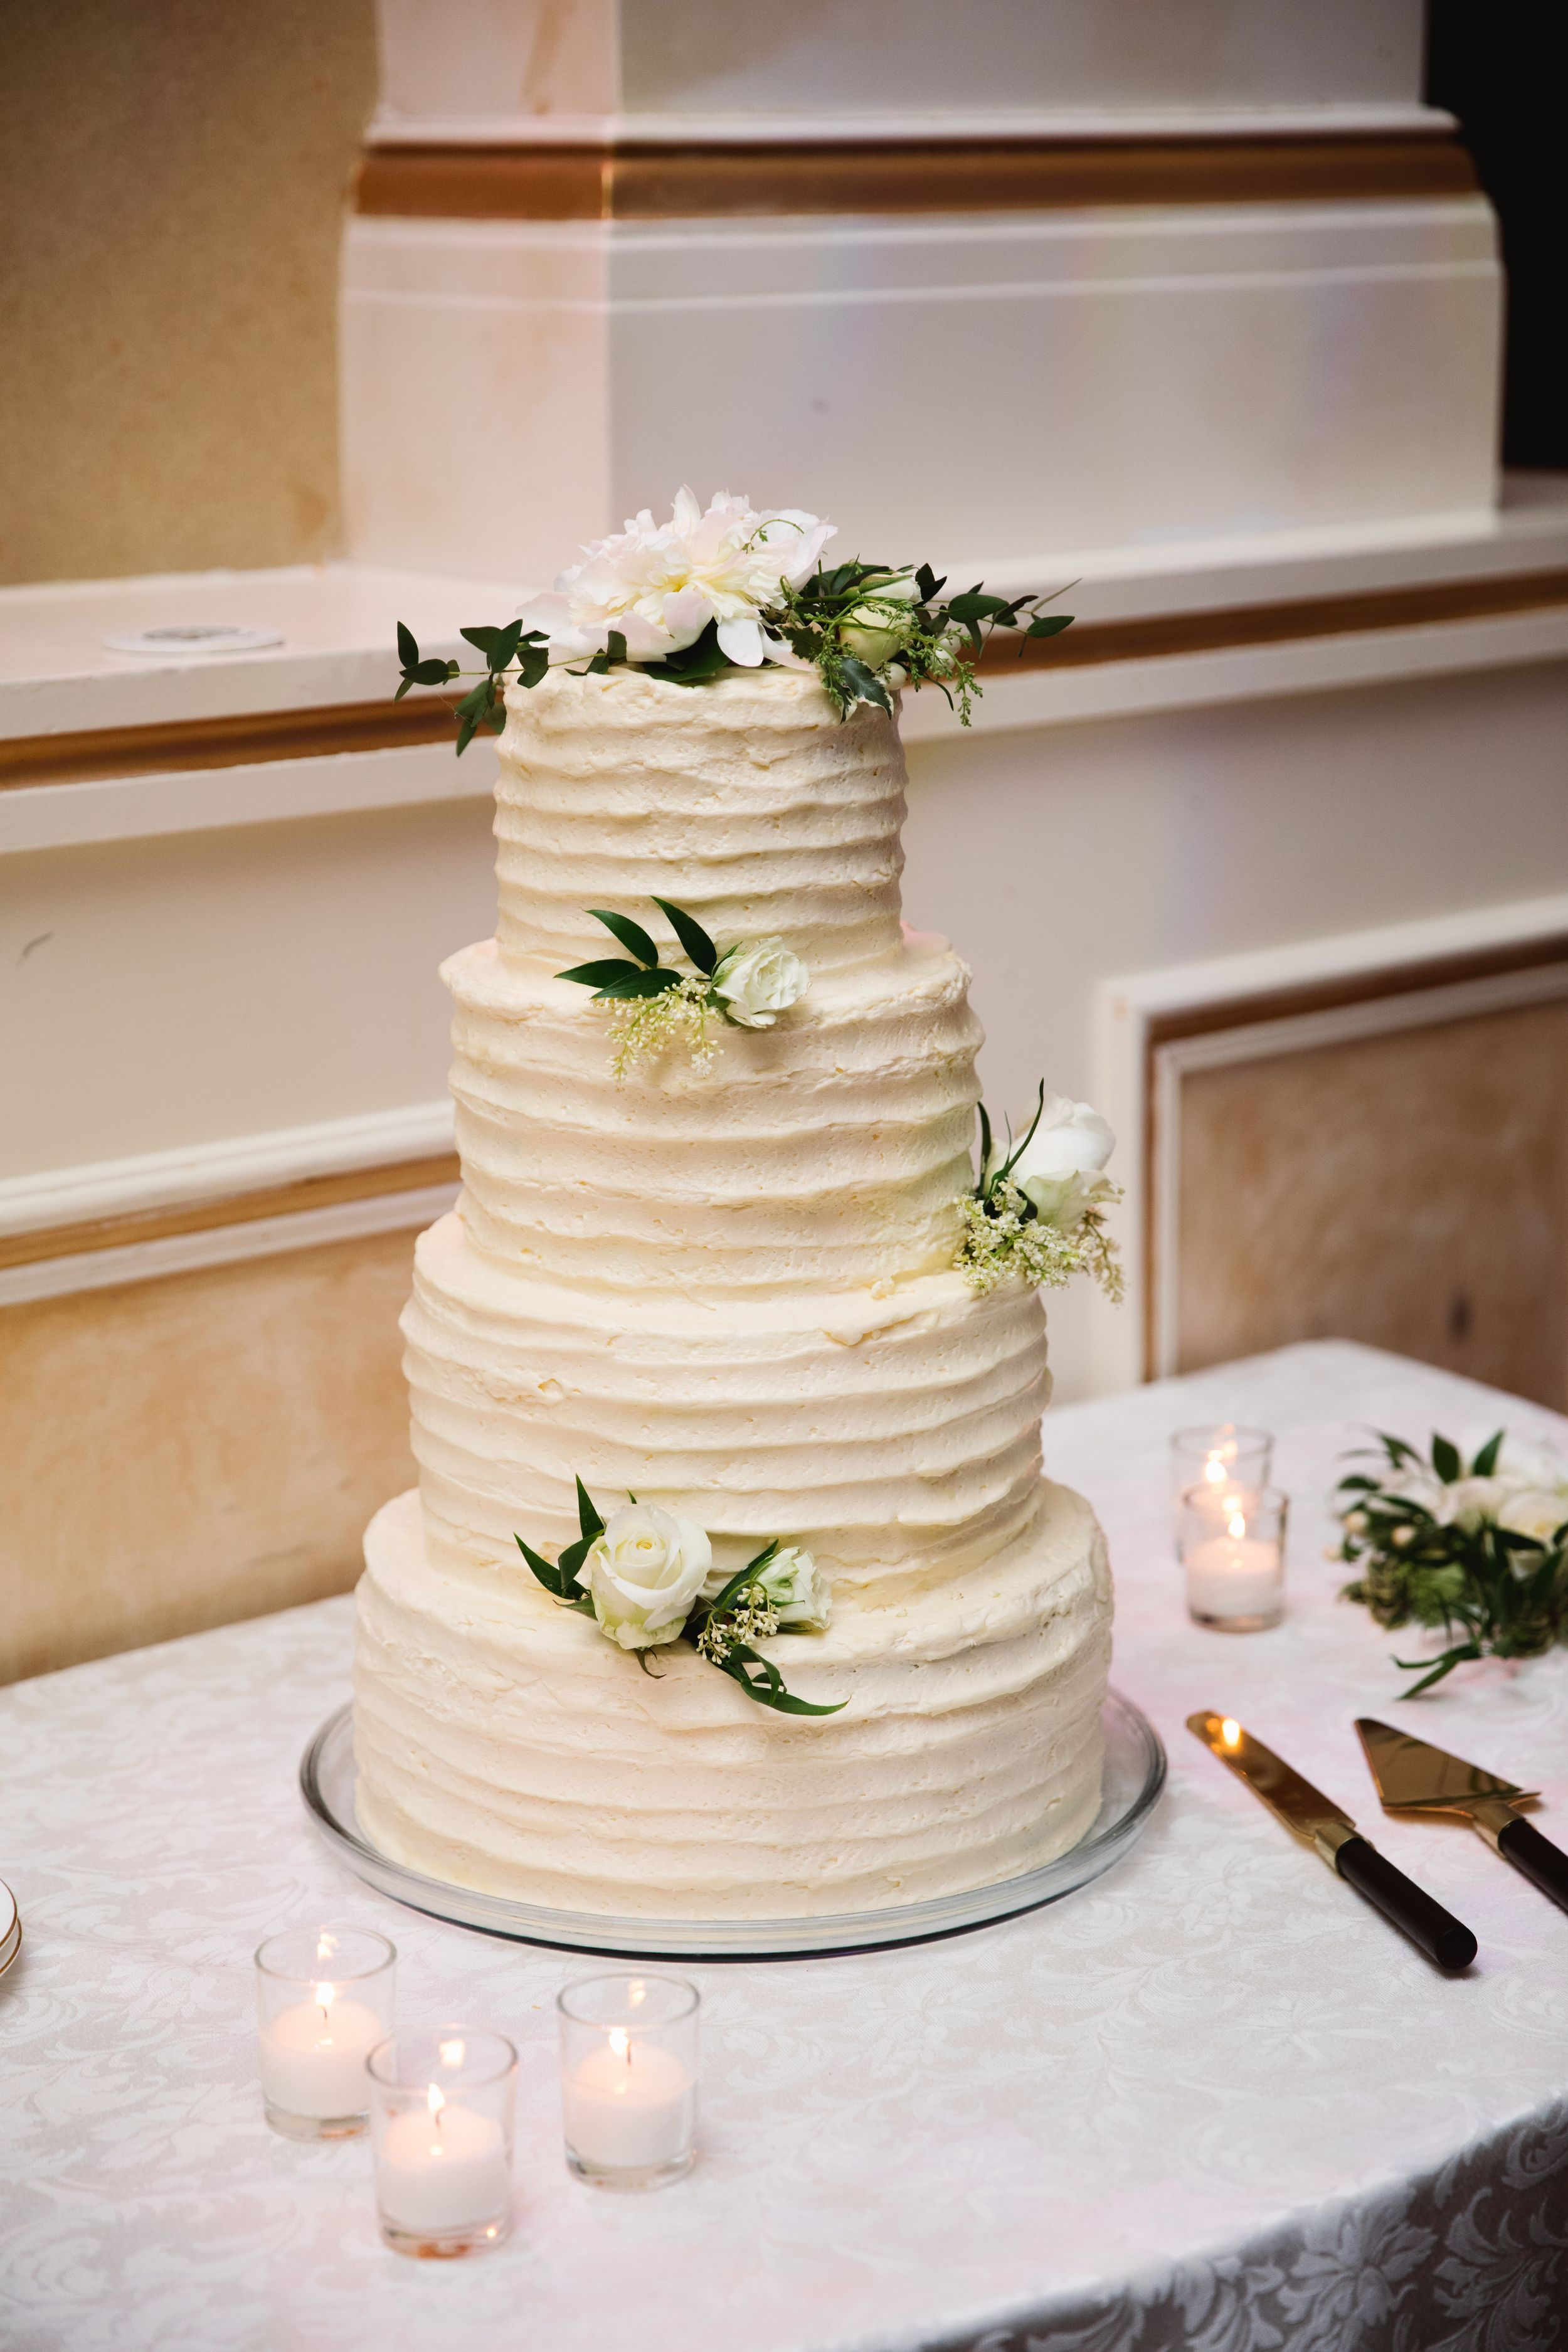 white wedding cake with greenery and candles around it